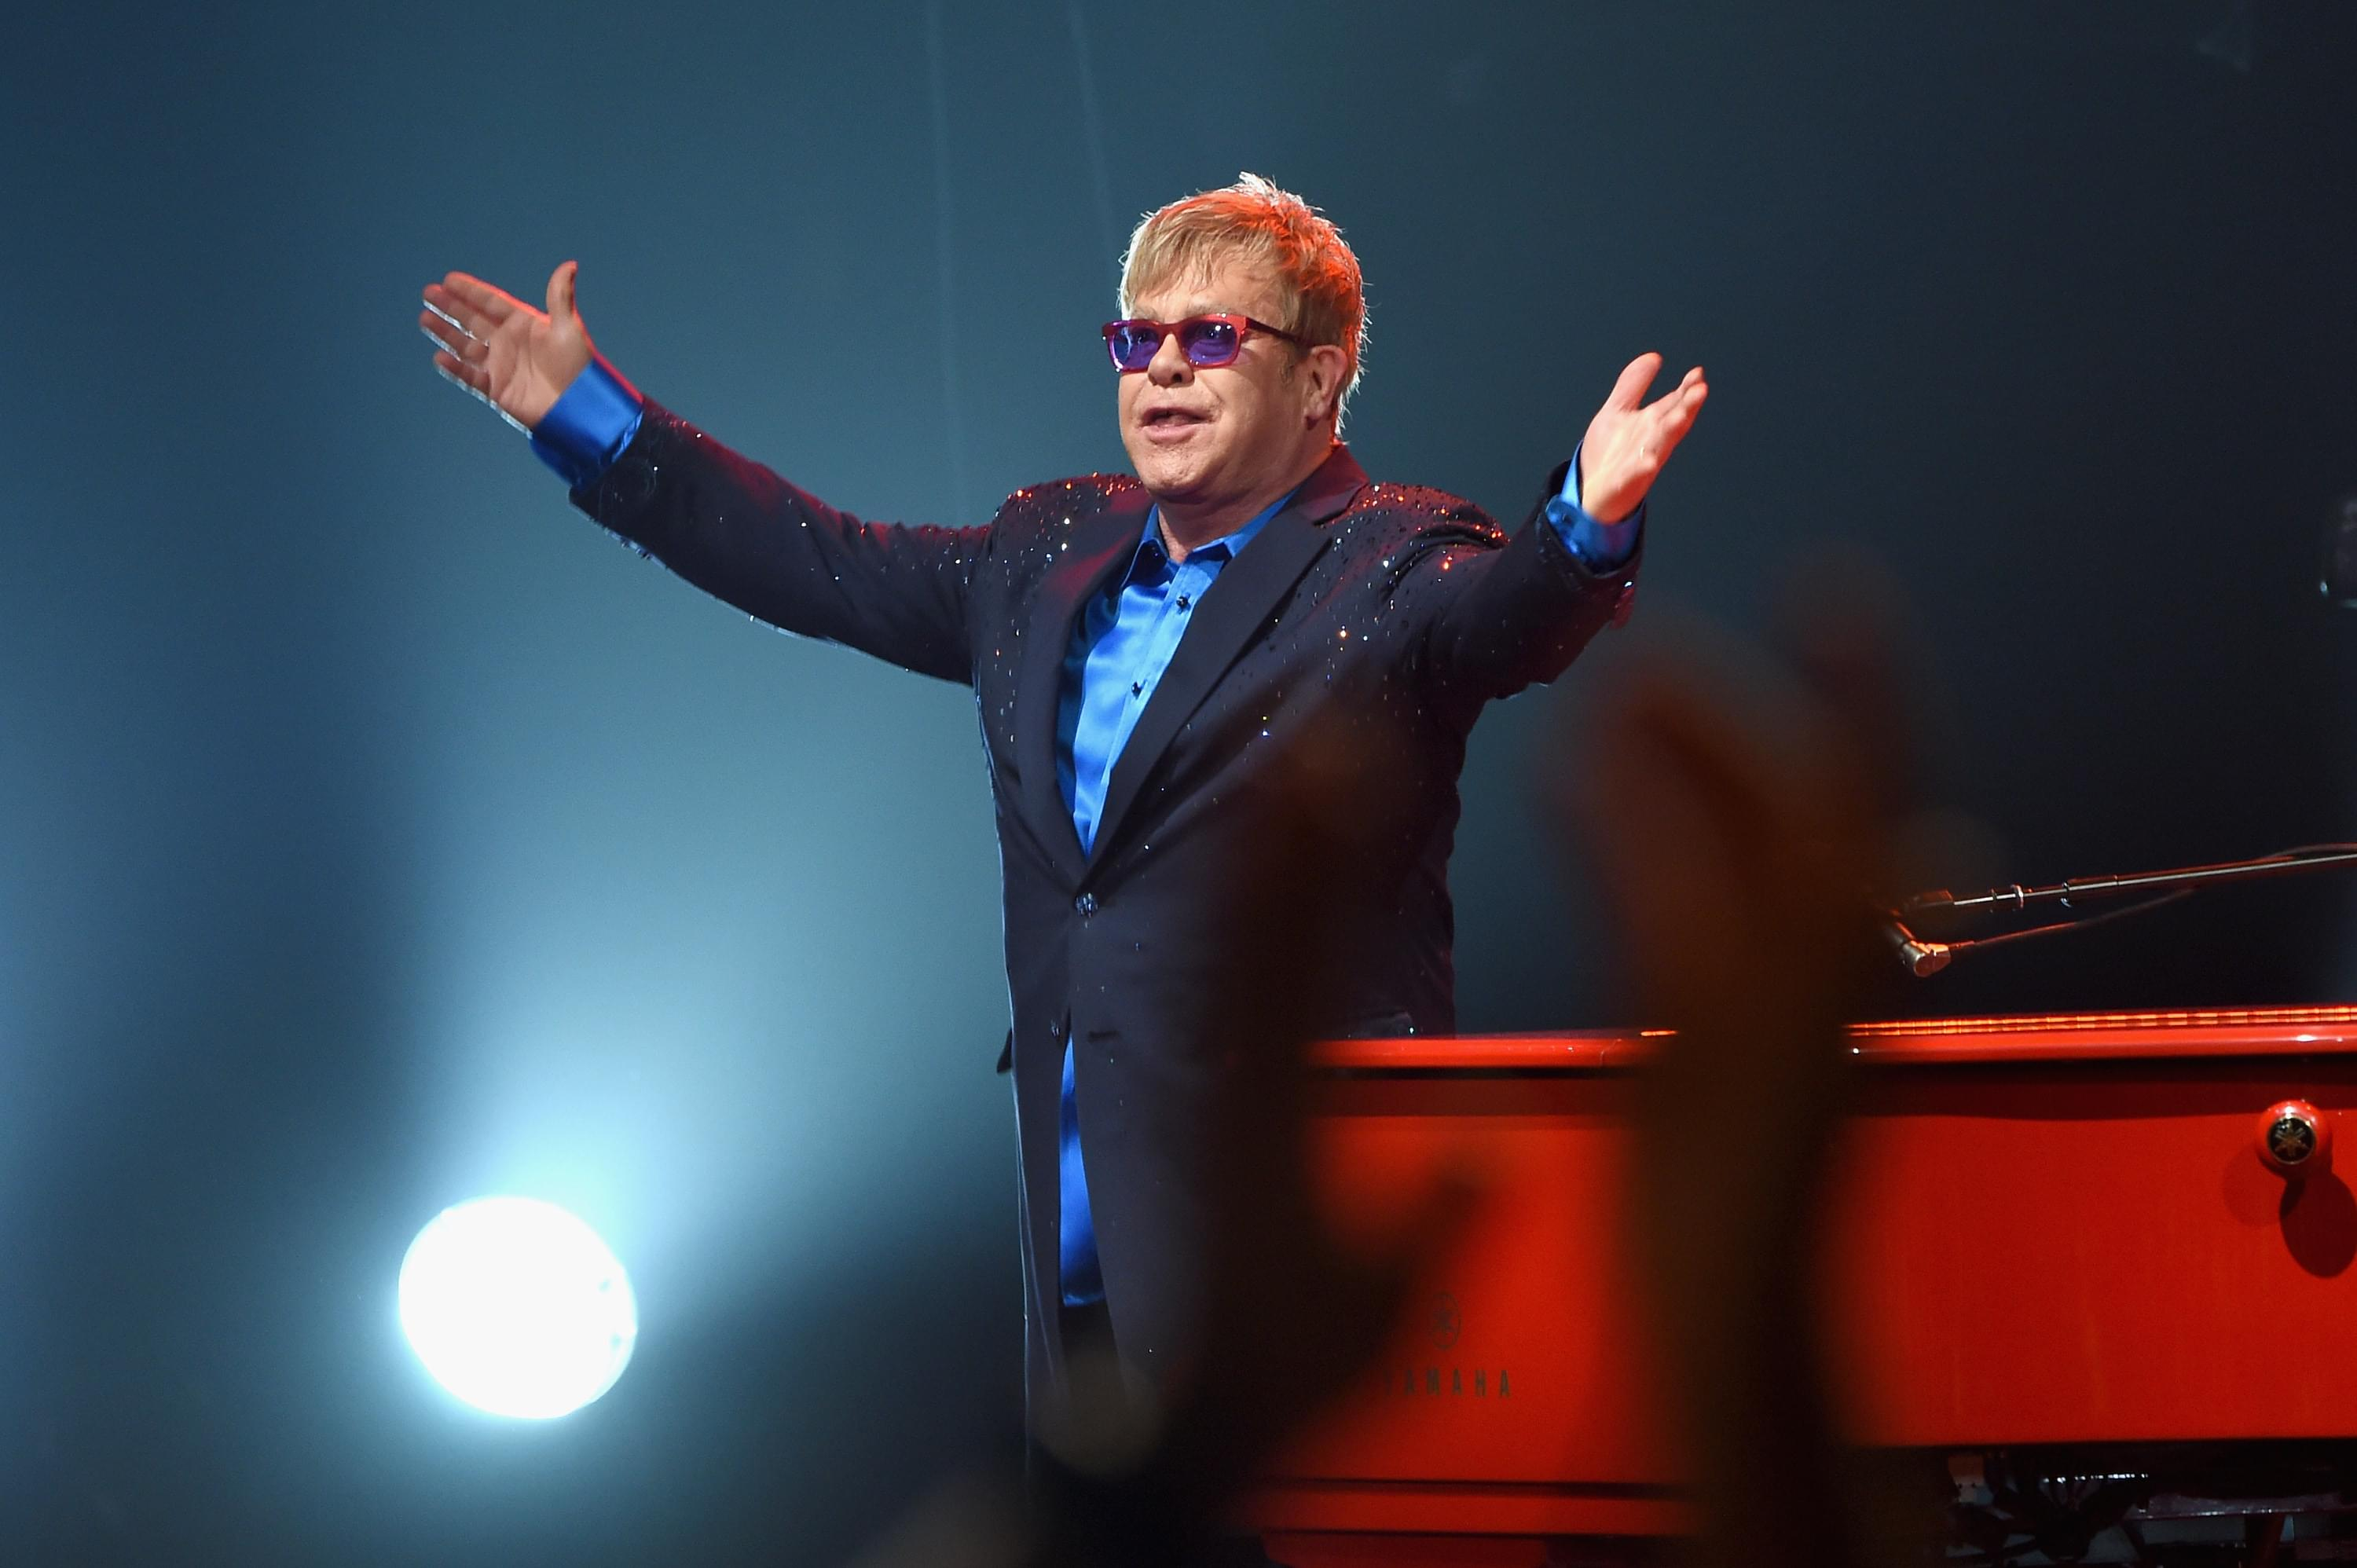 Elton John rescheduled North American dates for 2022